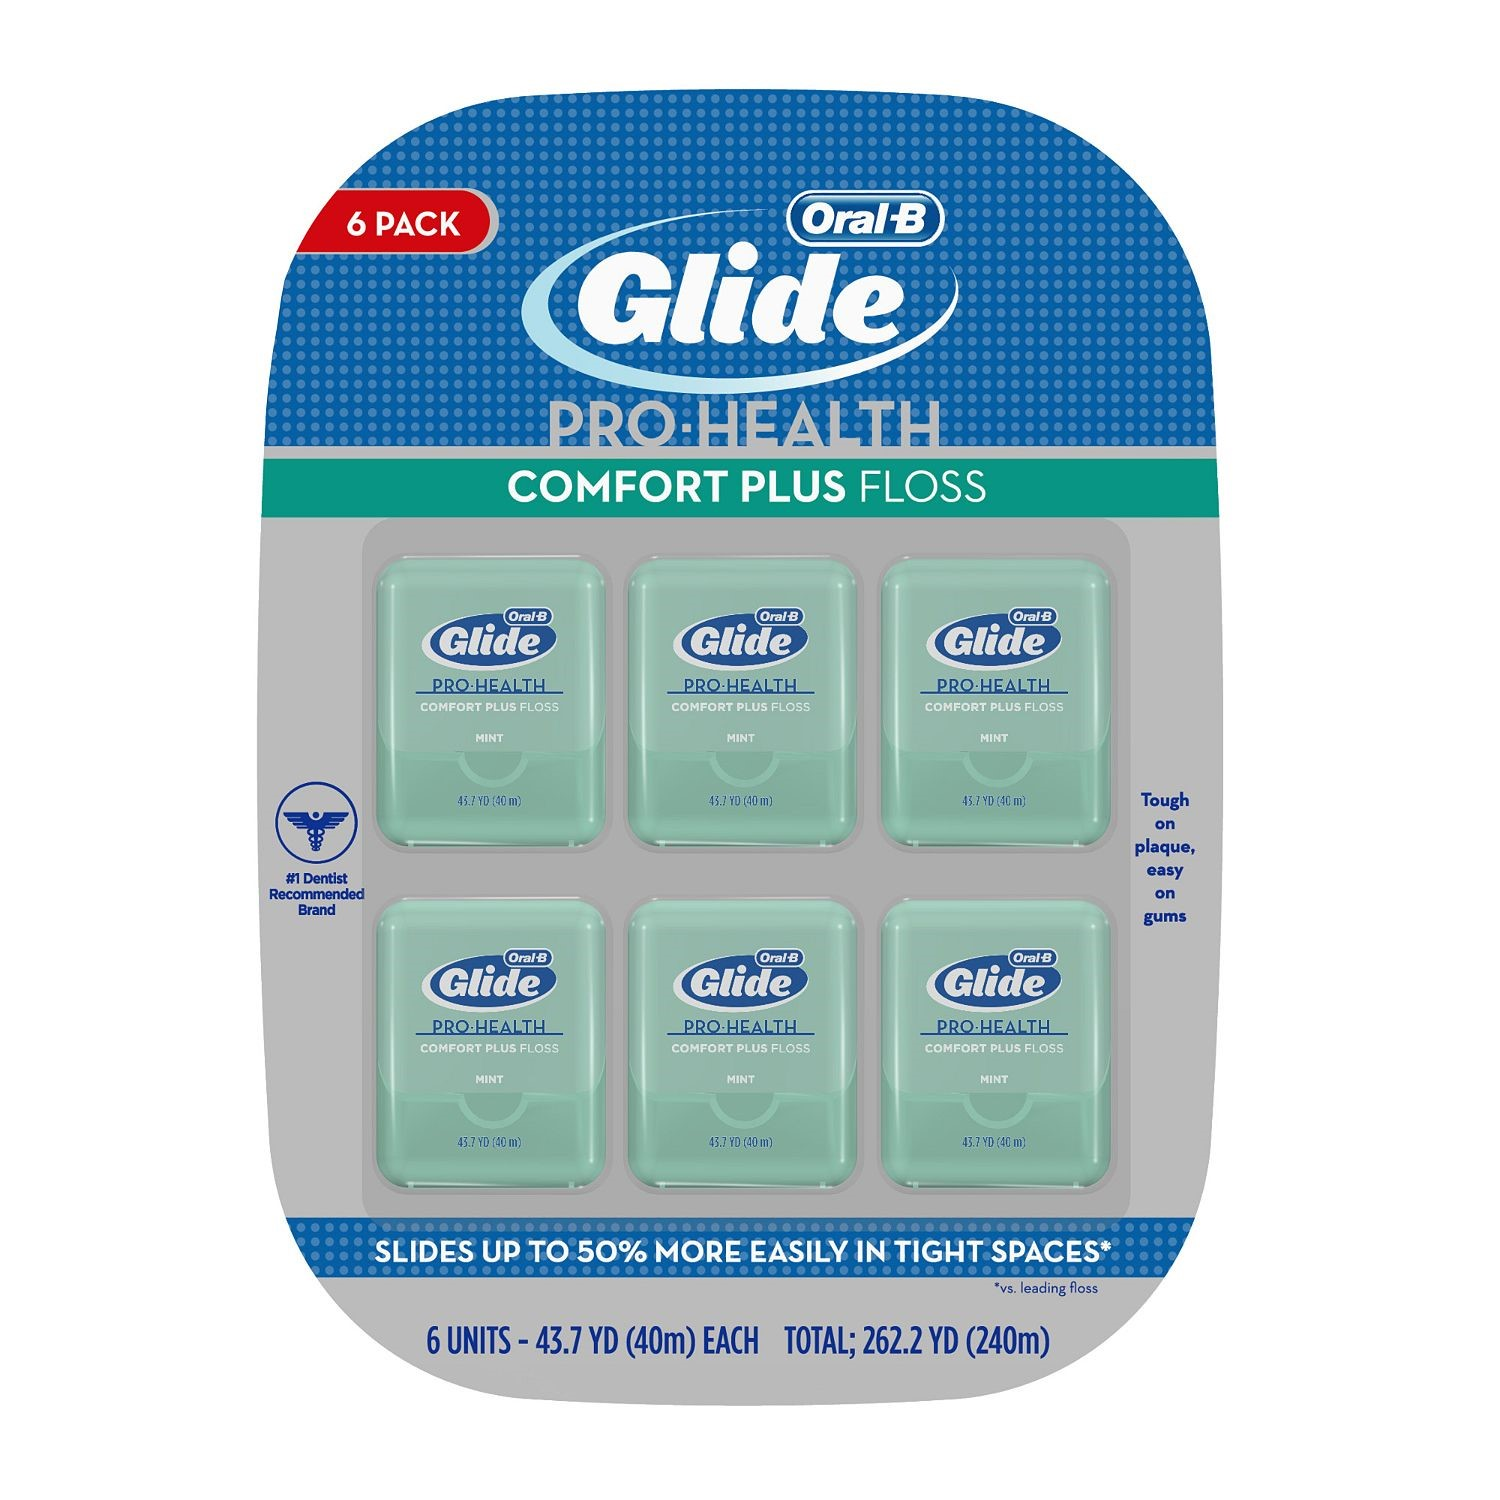 (Pack of 2) Oral-B Glide Pro-Health Comfort Plus Dental Floss, Mint, 40 M